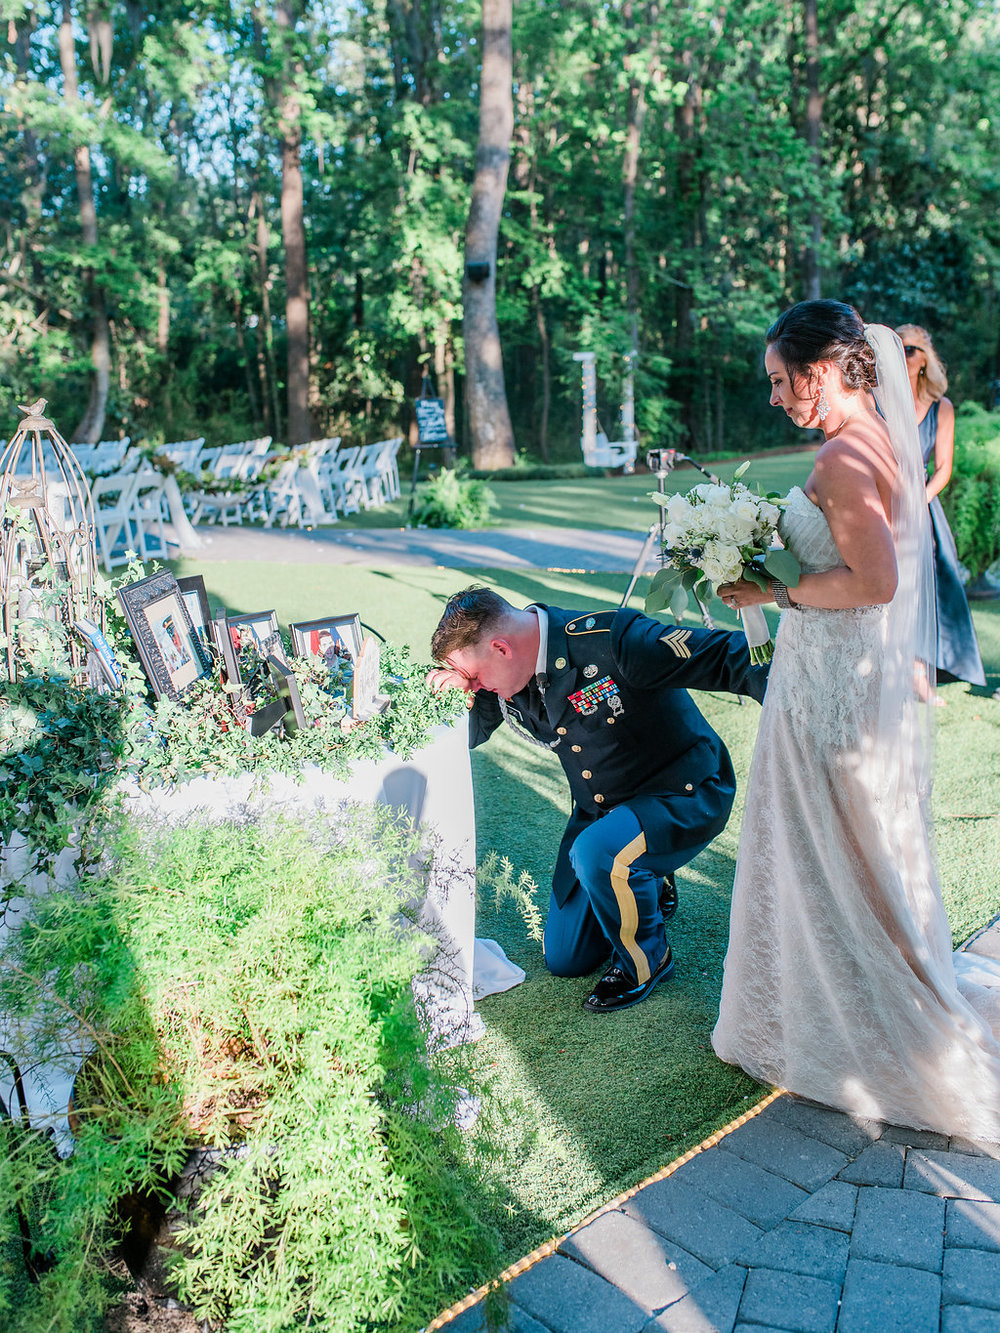 ivory-and-beau-bridal-boutique-lipski-surprise-wedding-5d-photography-military-wedding-savannah-savannah-military-bride-surprise-wedding-41.jpg